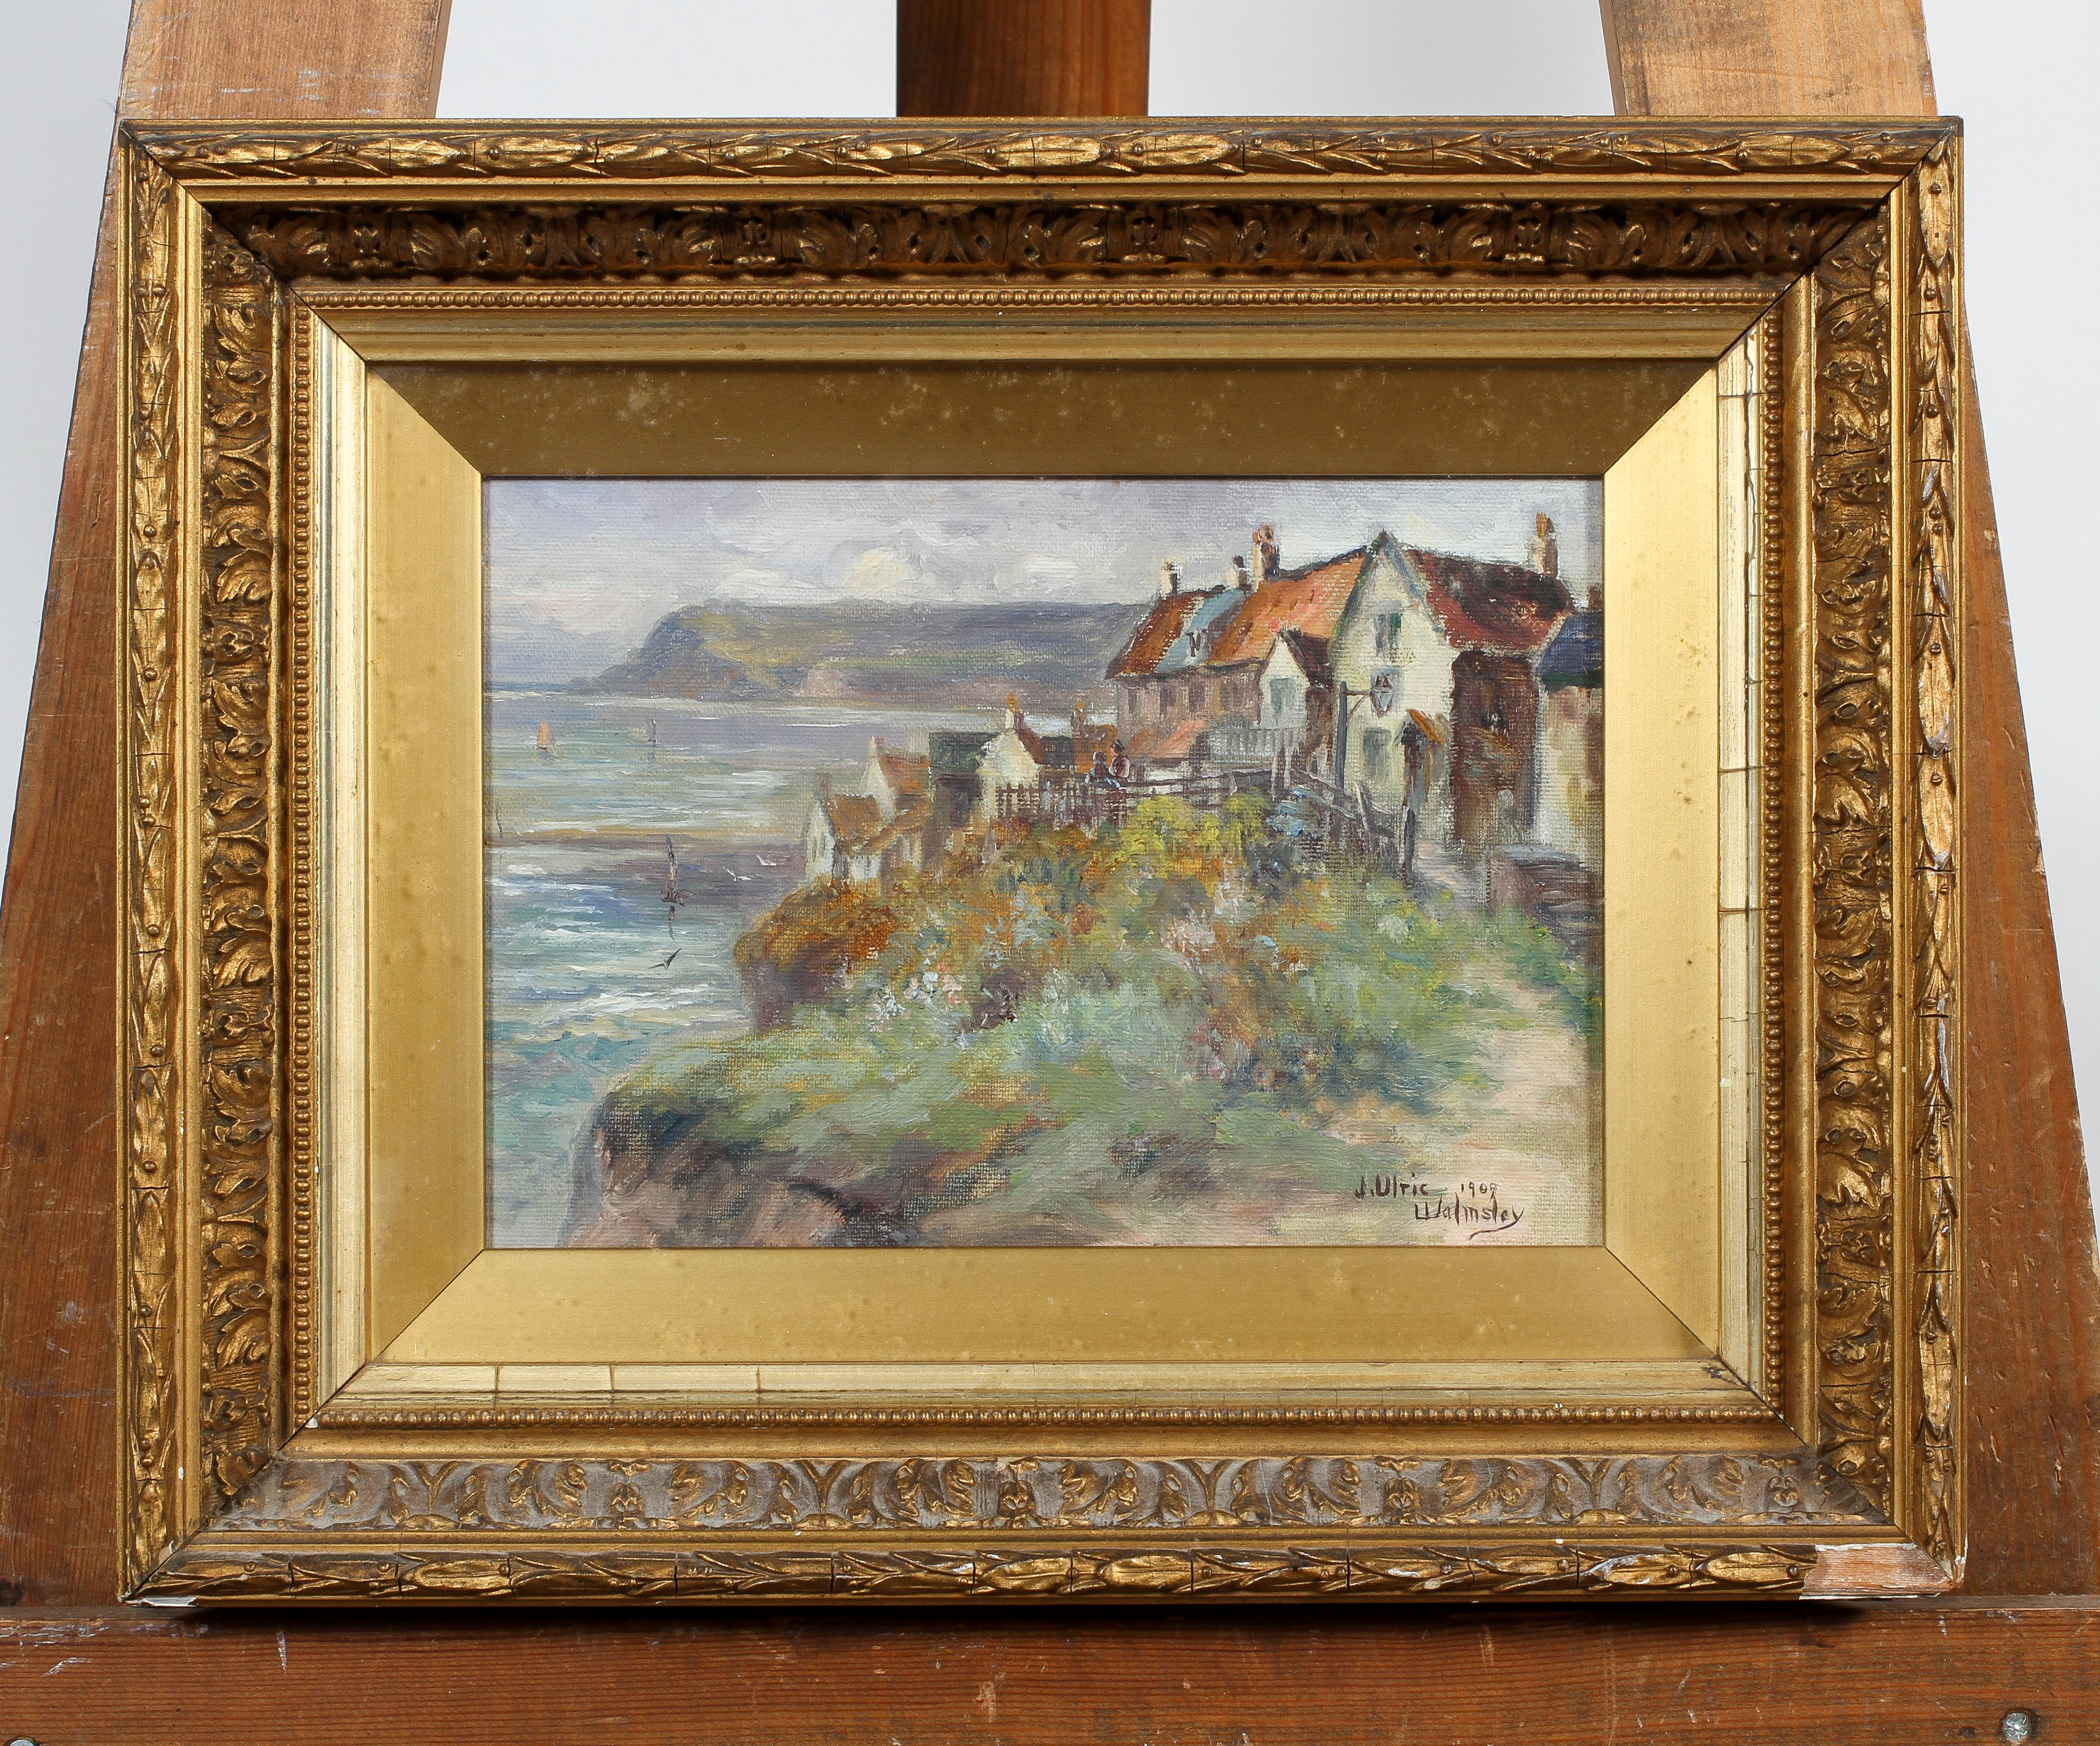 J Ulric, Walmsley, Coastal Village Scene, oil on canvas, signed and dated 1909 lower right, - Image 2 of 4